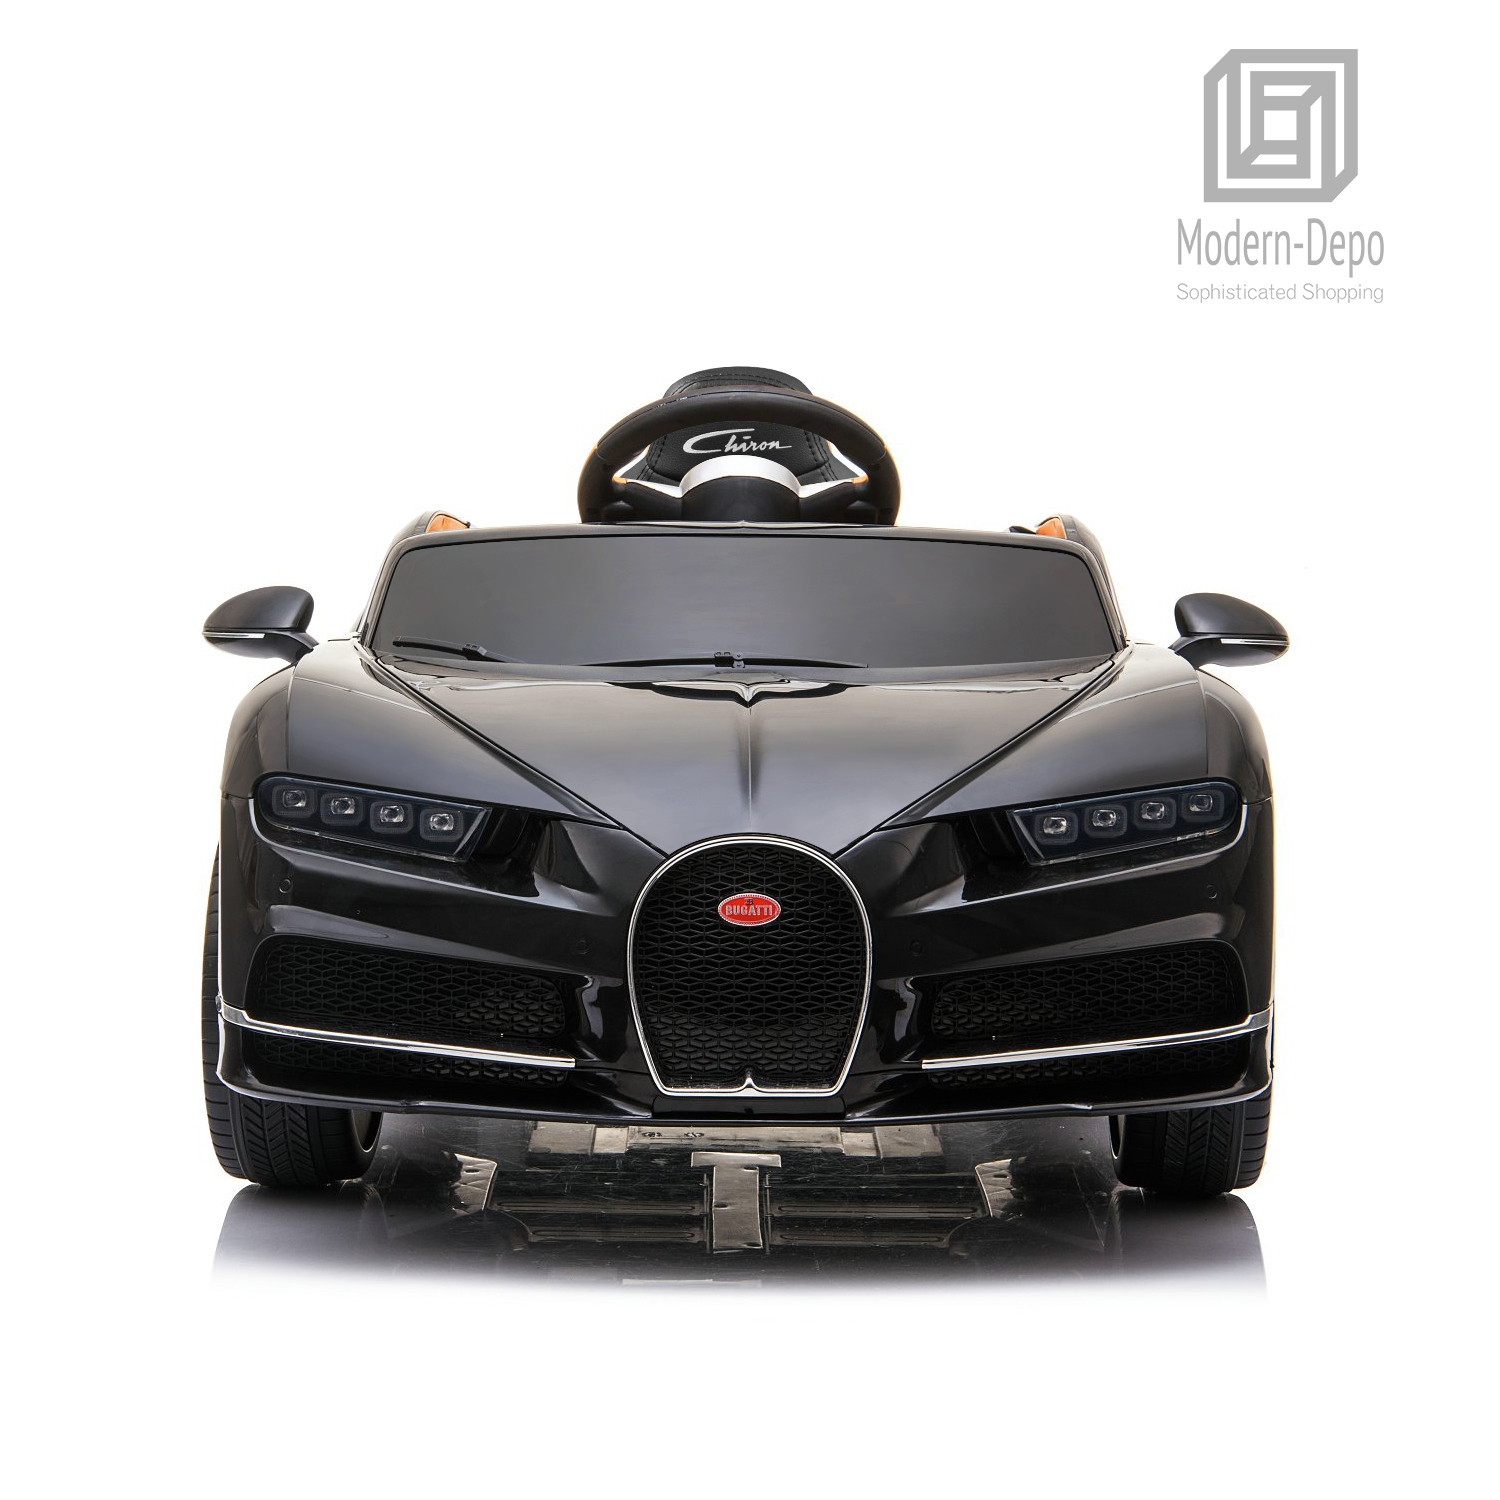 Bugatti-Chiron-12V-Kids-Ride-On-Car-with-Remote-Control-High-Speed-Motor miniature 9